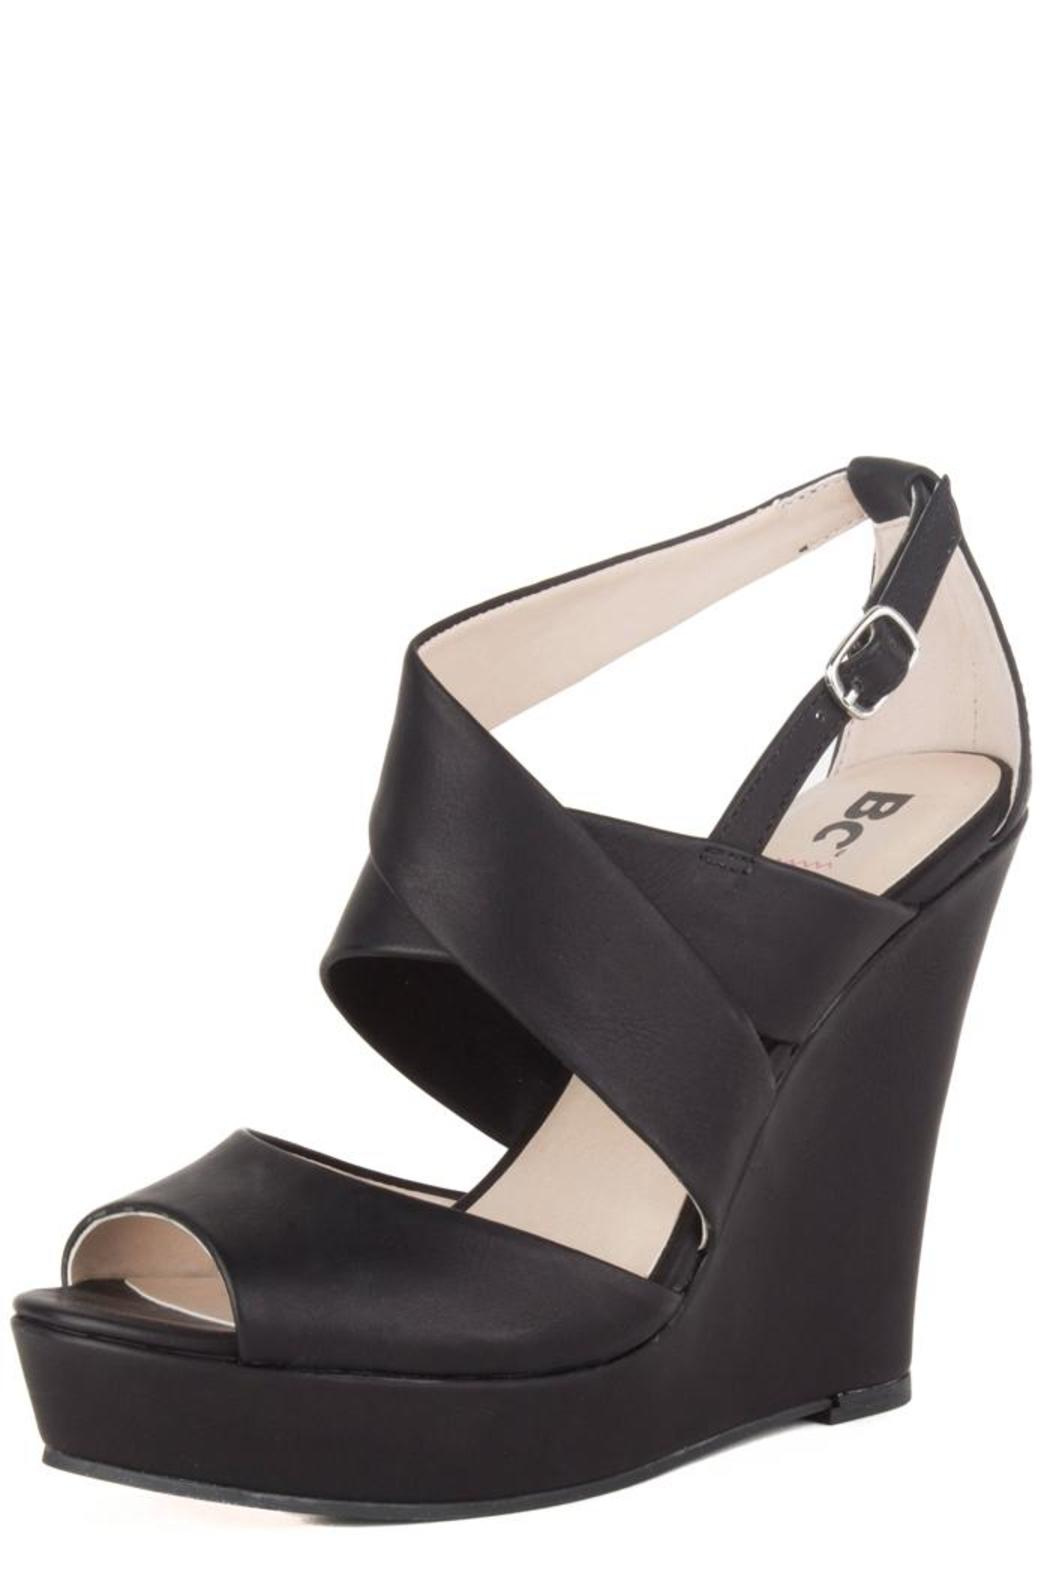 BC Footwear Flicker Wedge - Front Cropped Image